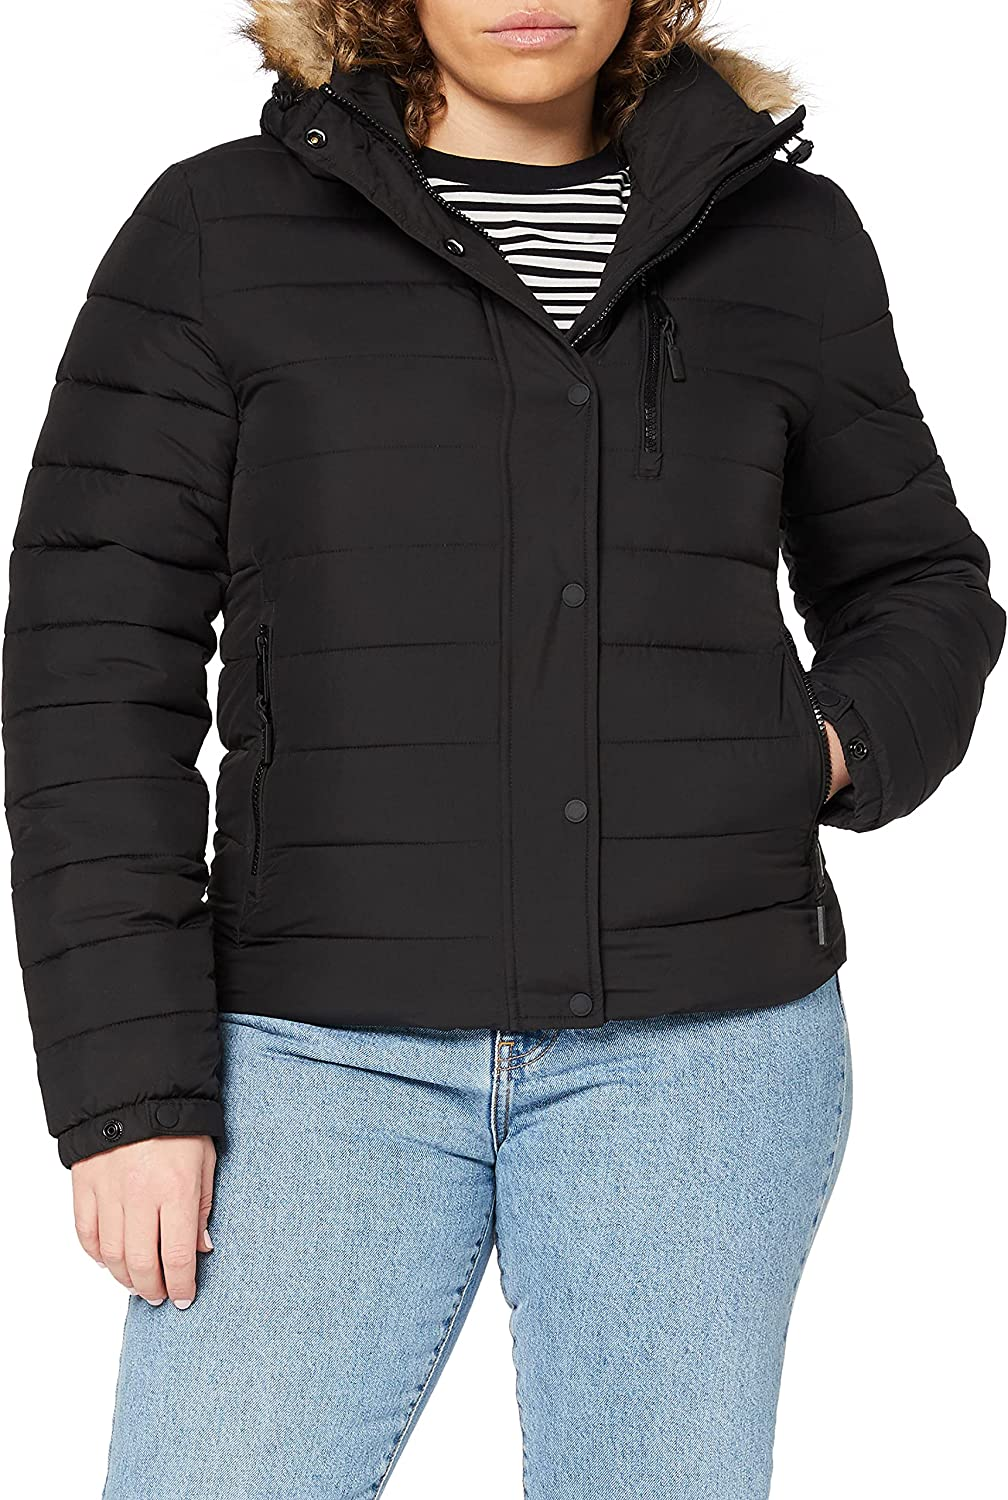 Ranking TOP4 Superdry Classic Challenge the lowest price of Japan ☆ Faux Fuji Fur Jacket